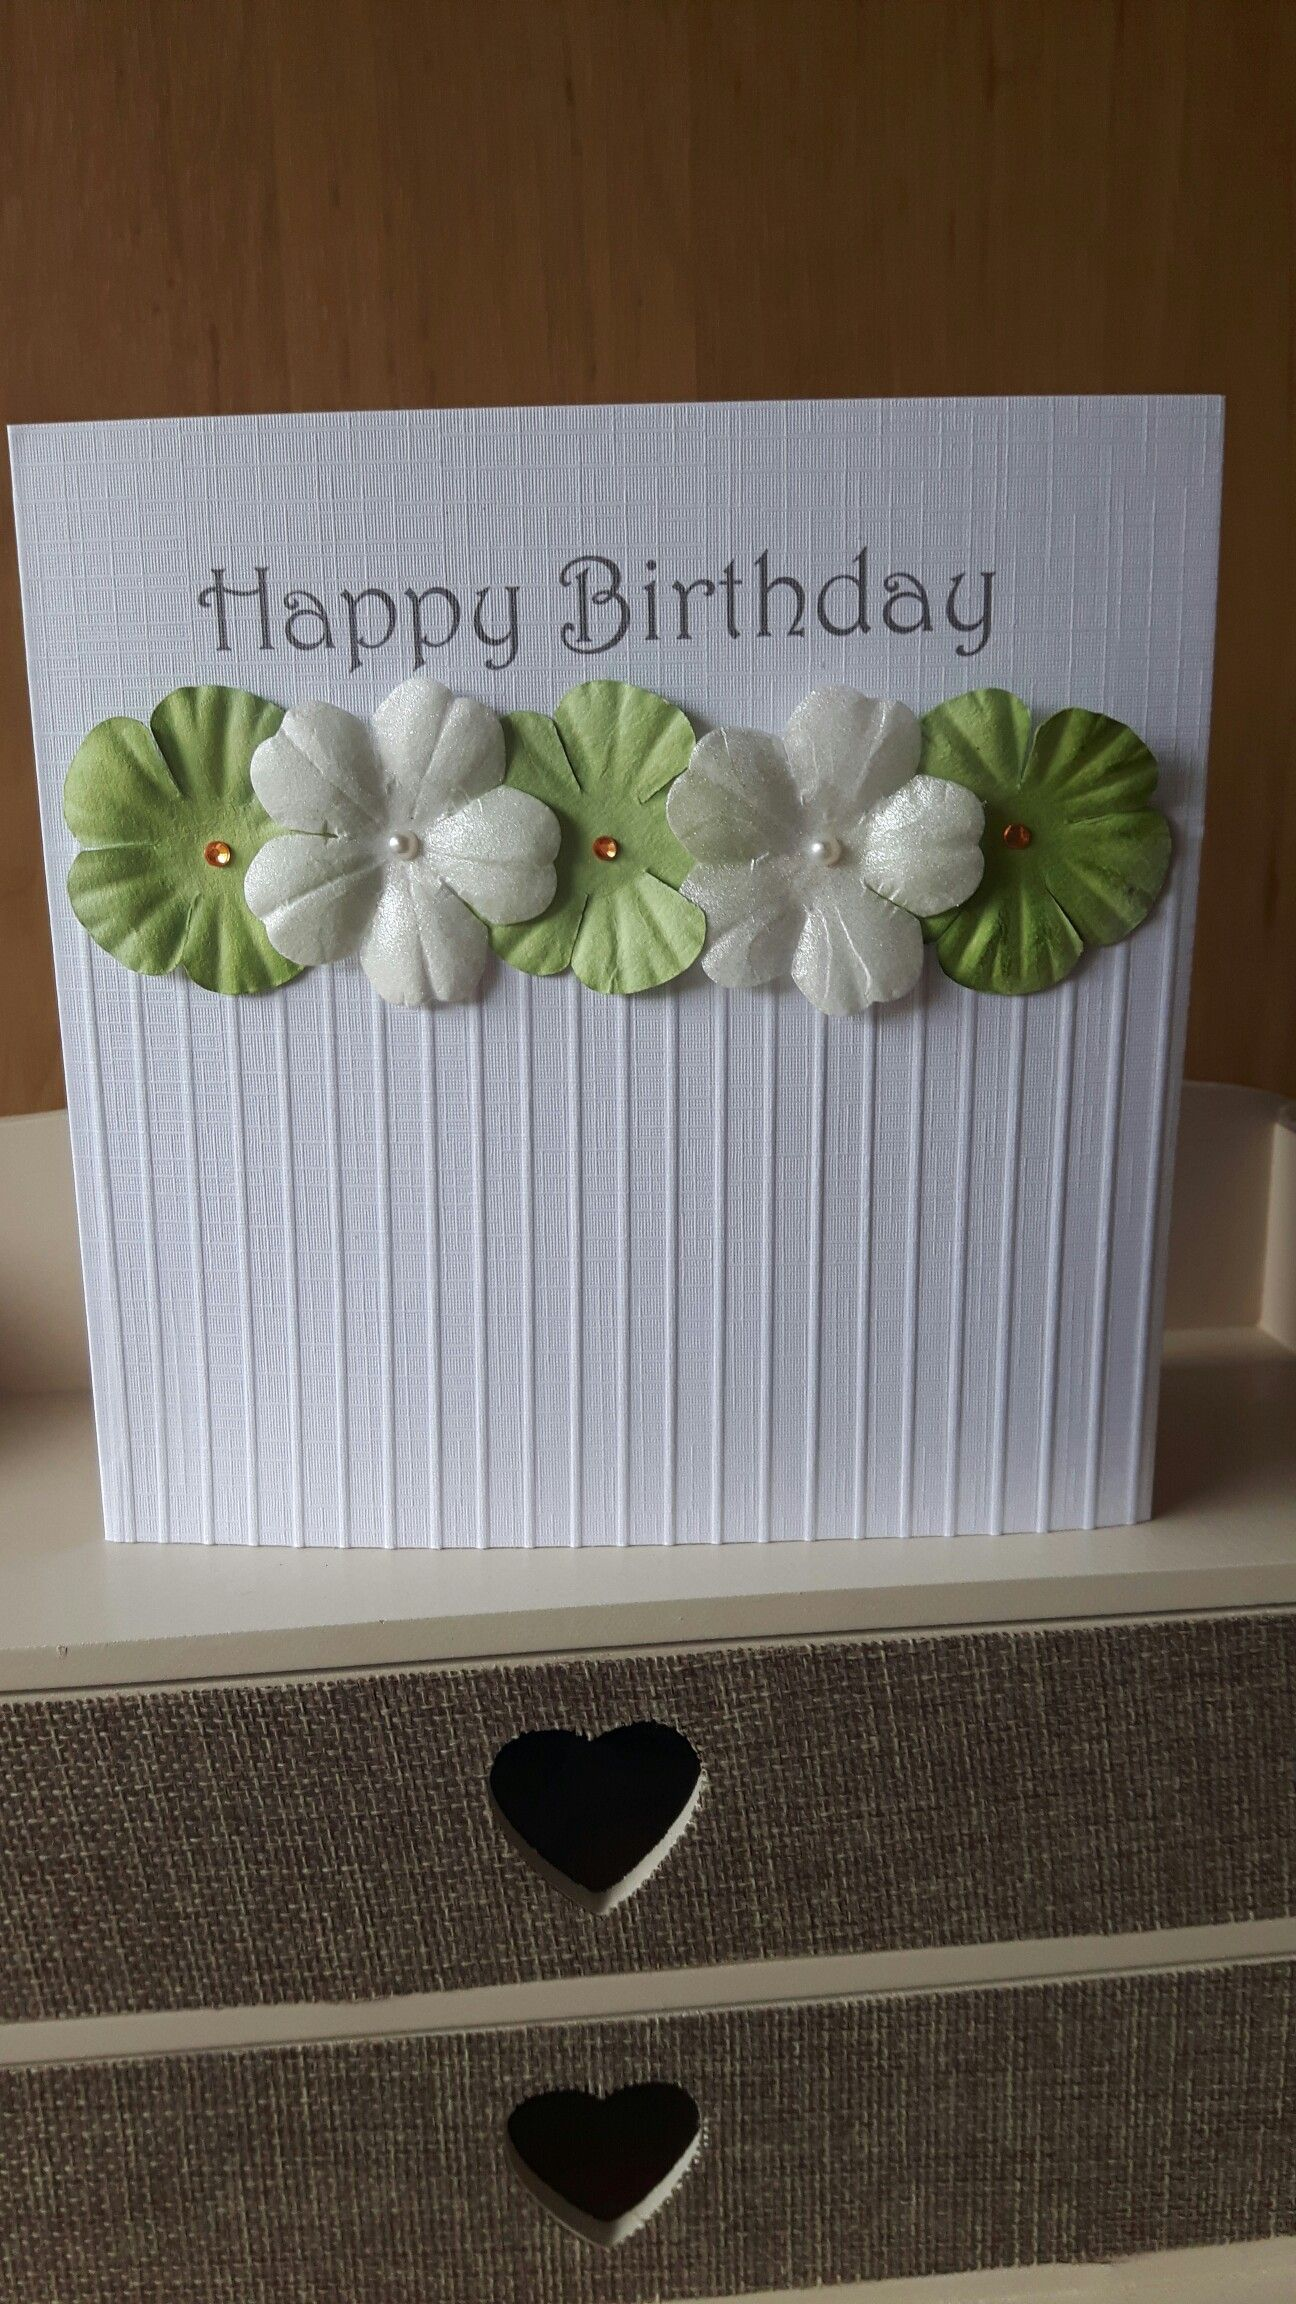 Clean and fresh birthday card cards pinterest cards clean and fresh birthday card izmirmasajfo Images